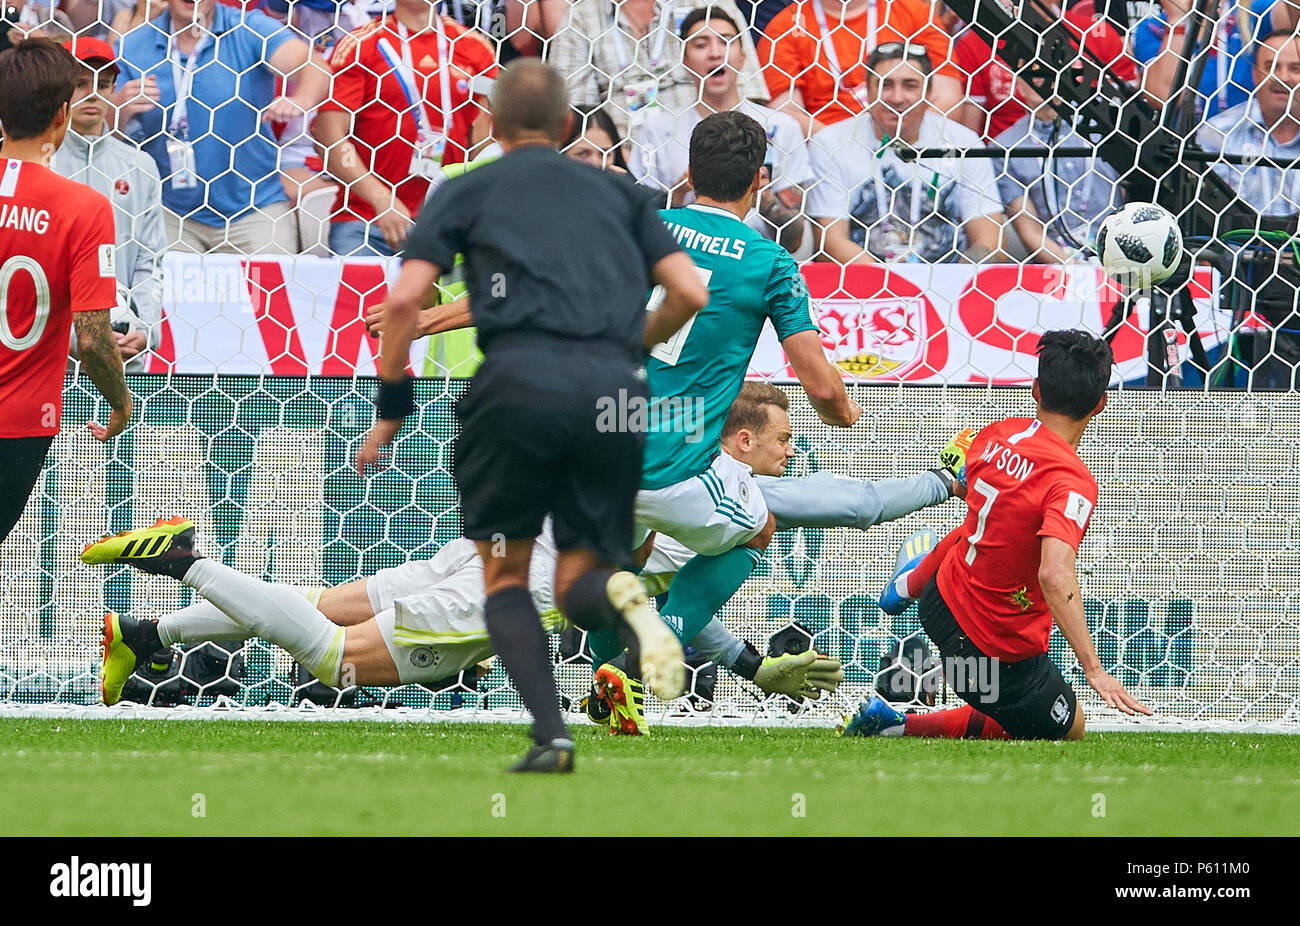 Germany - South Korea, Soccer, Kazan, June 27, 2018 Manuel NEUER, DFB 1  goalkeeper, fights for the ball, Heungmin SON, Korean Republic Nr. 7 catches,  catch, ...